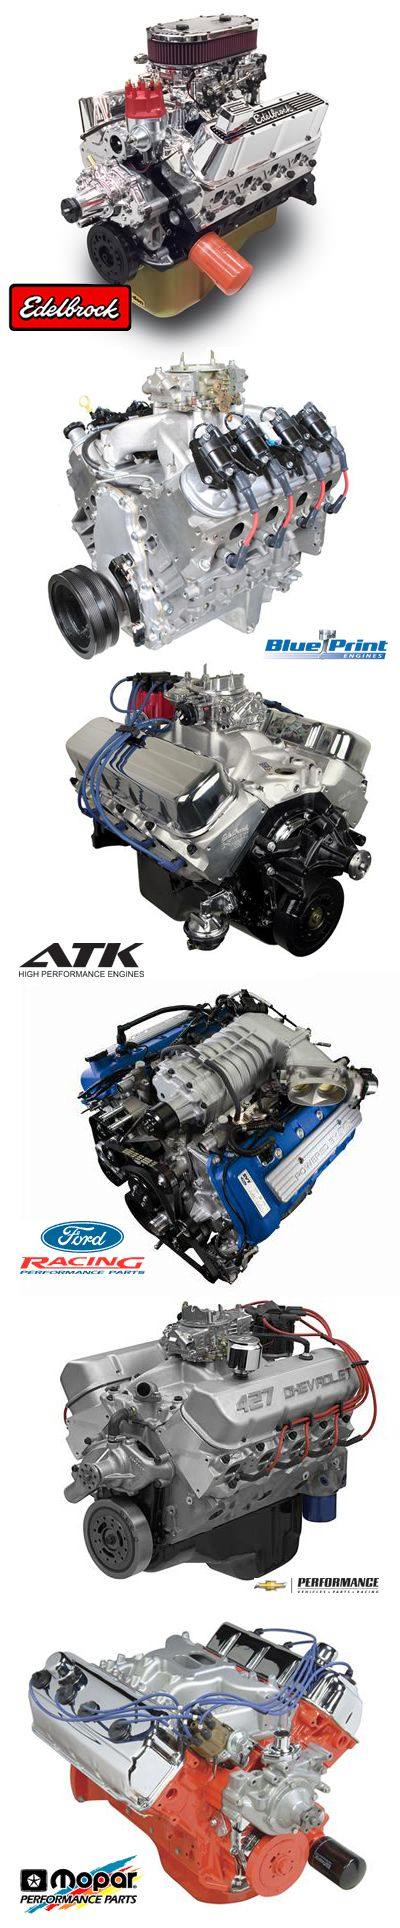 With crate engines from top brands like BluePrint Engines